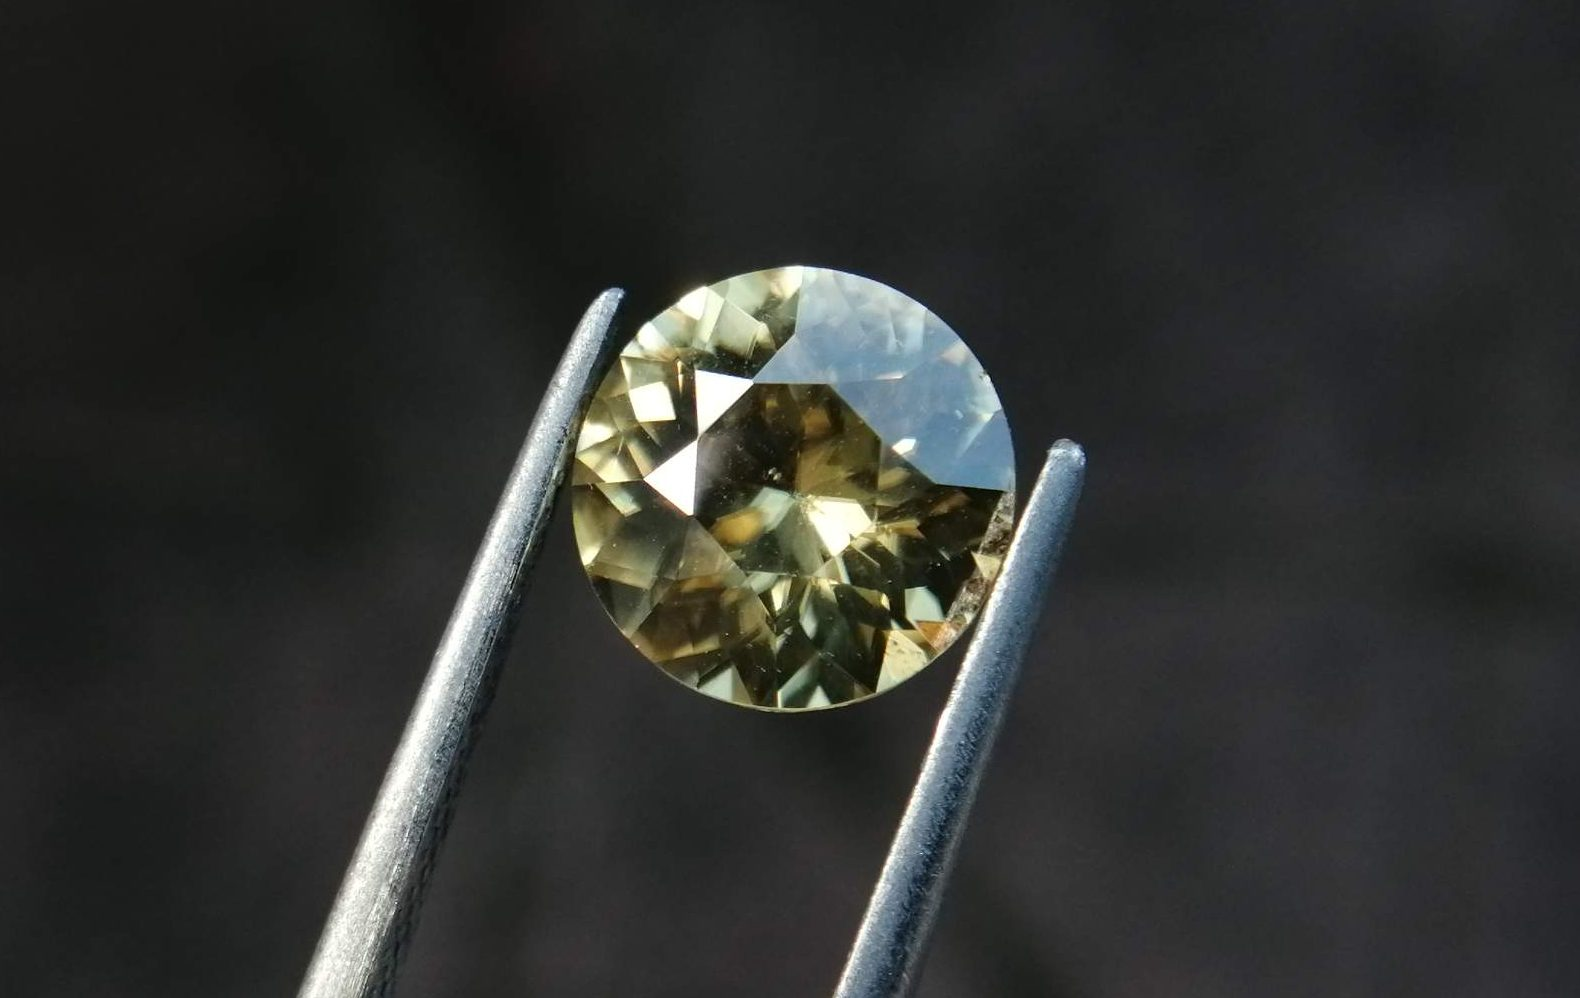 """Natural Yellow Zircon Sri Lanka Colour : Light Yellow Shape : Round Weight : 3.70 Cts Dimension : 9.1 x 5.5 mm Treatment : Traditional Low-temperature heating Clarity : VS Origin : Ratnapura, Sri Lanka Zircon is a nesosilicates group mineral. Its corresponding chemical formula is ZrSiO4. The name derives from the Persian zargun, meaning """"gold-hued"""". Zircon is a popular gemstone that has been used for nearly 2000 years. The crystal structure of zircon is a tetragonal crystal mineral with 7.5 hardness according to the Mohs Hardness scale. Zircon is also very resistant to heat and corrosion and known as Insoluble gemstone. This Uniaxial (+) mineral Specific gravity is 4.6–4.7. It's heavy more than such as Sapphire, chrysoberyl, Garnets, spinels. Gem Businessmen use these physical properties to identify zircons from other gemstones. Zircon has weak pleochroism and has colors such as Colorless, Very Strong Blue To Green-Blue, Yellow, Blue-Green, Yellowish Green, Yellow-Green, Brown, Orangy Yellow To Reddish Orange, Dark Brownish Red, Sometimes Purple, Gray To Bluish Gray, Brownish Gray. Colorless specimens that show gem quality are a popular substitute for diamond and are also known as """"Matara diamond"""". Zircon has been classified into three types called high zircon, intermediate zircon ( medium zircon ), and low zircon. Some Quality Type brown zircons can be transformed into colorless and blue zircons by heating to 800 to 1000 °C. There are Some using names for Zircon such as Hyacinth or jacinth: yellow-red, orange, red-brown to brown, Jargoon or jargon: light yellow to colorless stones, Beccarite: green zircon, Melichrysos: straw yellow, Starlite: blue heat treated zircon, Sparklite: colorless zircon. Zircon is found in Madagascar, Sri Lanka, Tanzania, Cambodia, Australia, Burma, Afghanistan, Canada, USA, Thailand, Russia, Mozambique, Norway. Healing Properties 👇 Zircon is known as """"The stone of virtue"""" All colors. It clears the auric negativity in the wearer and helps """